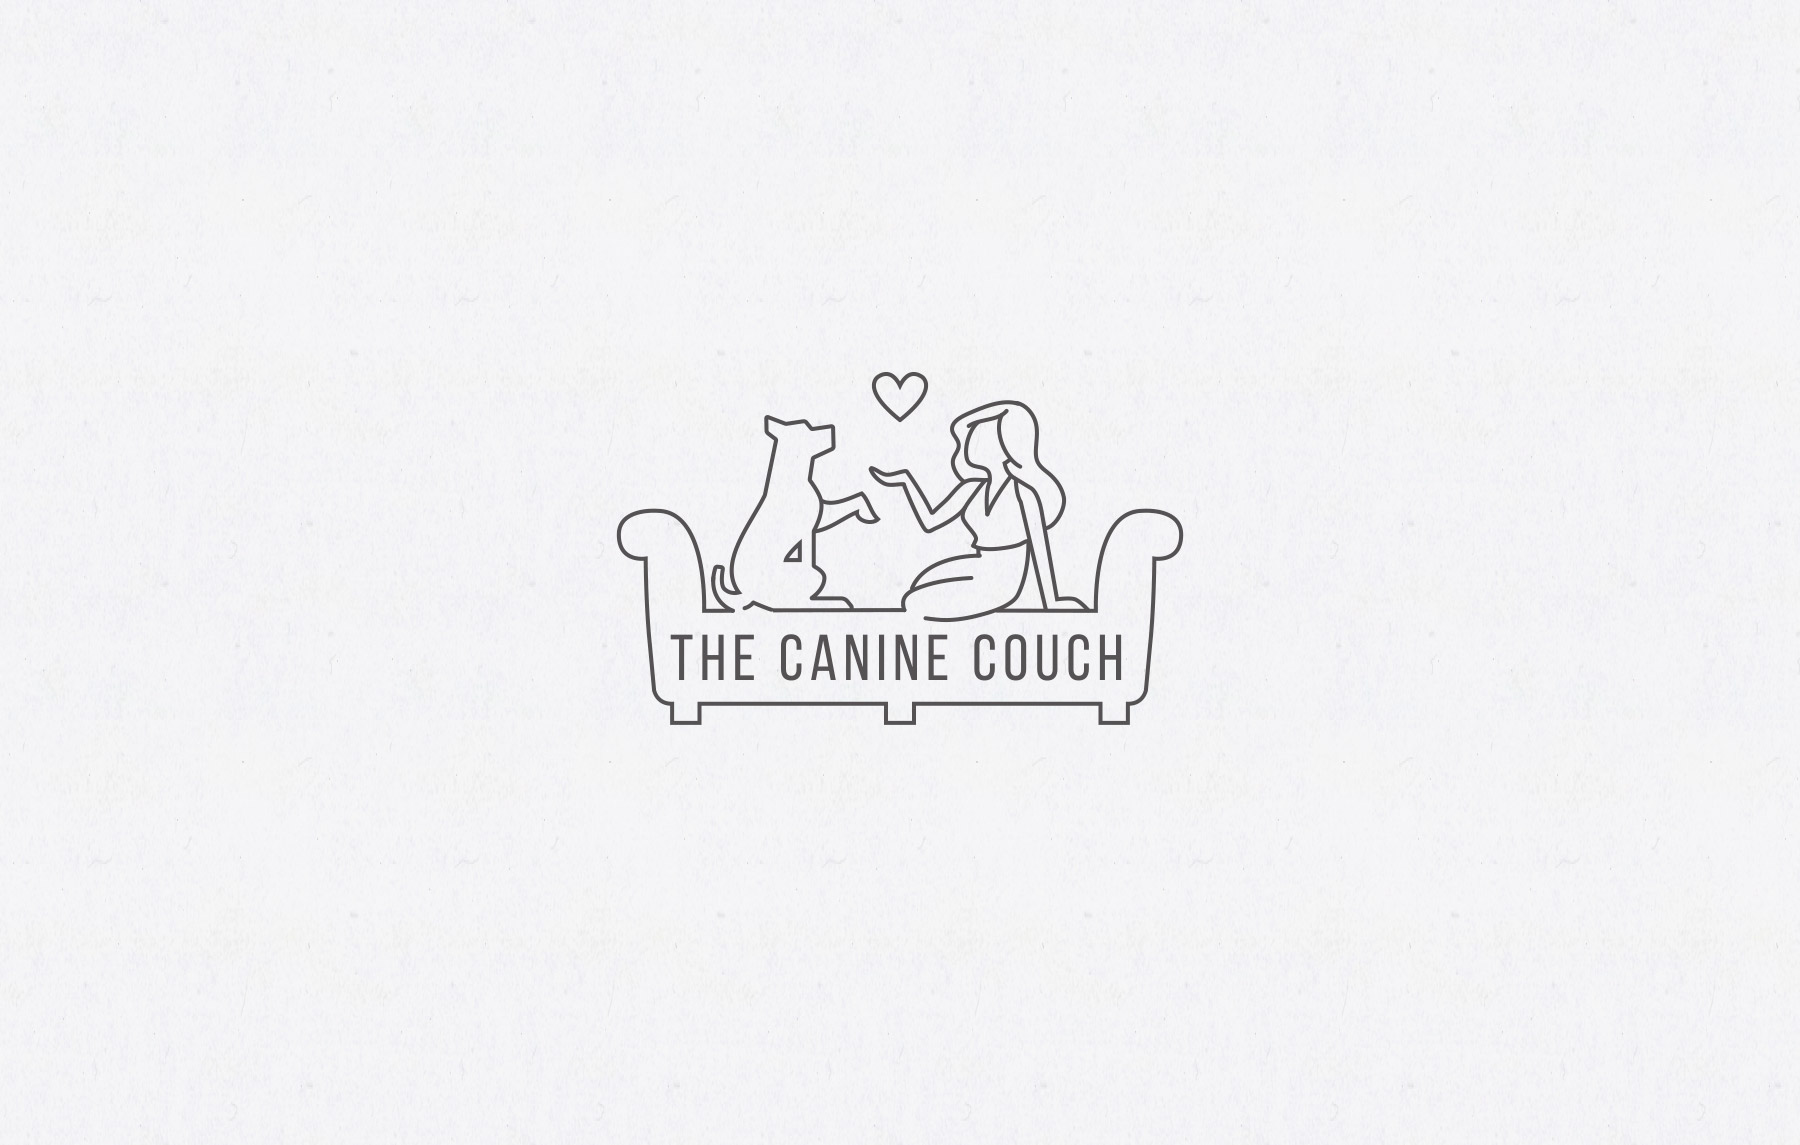 Comforting logo design for dog training service